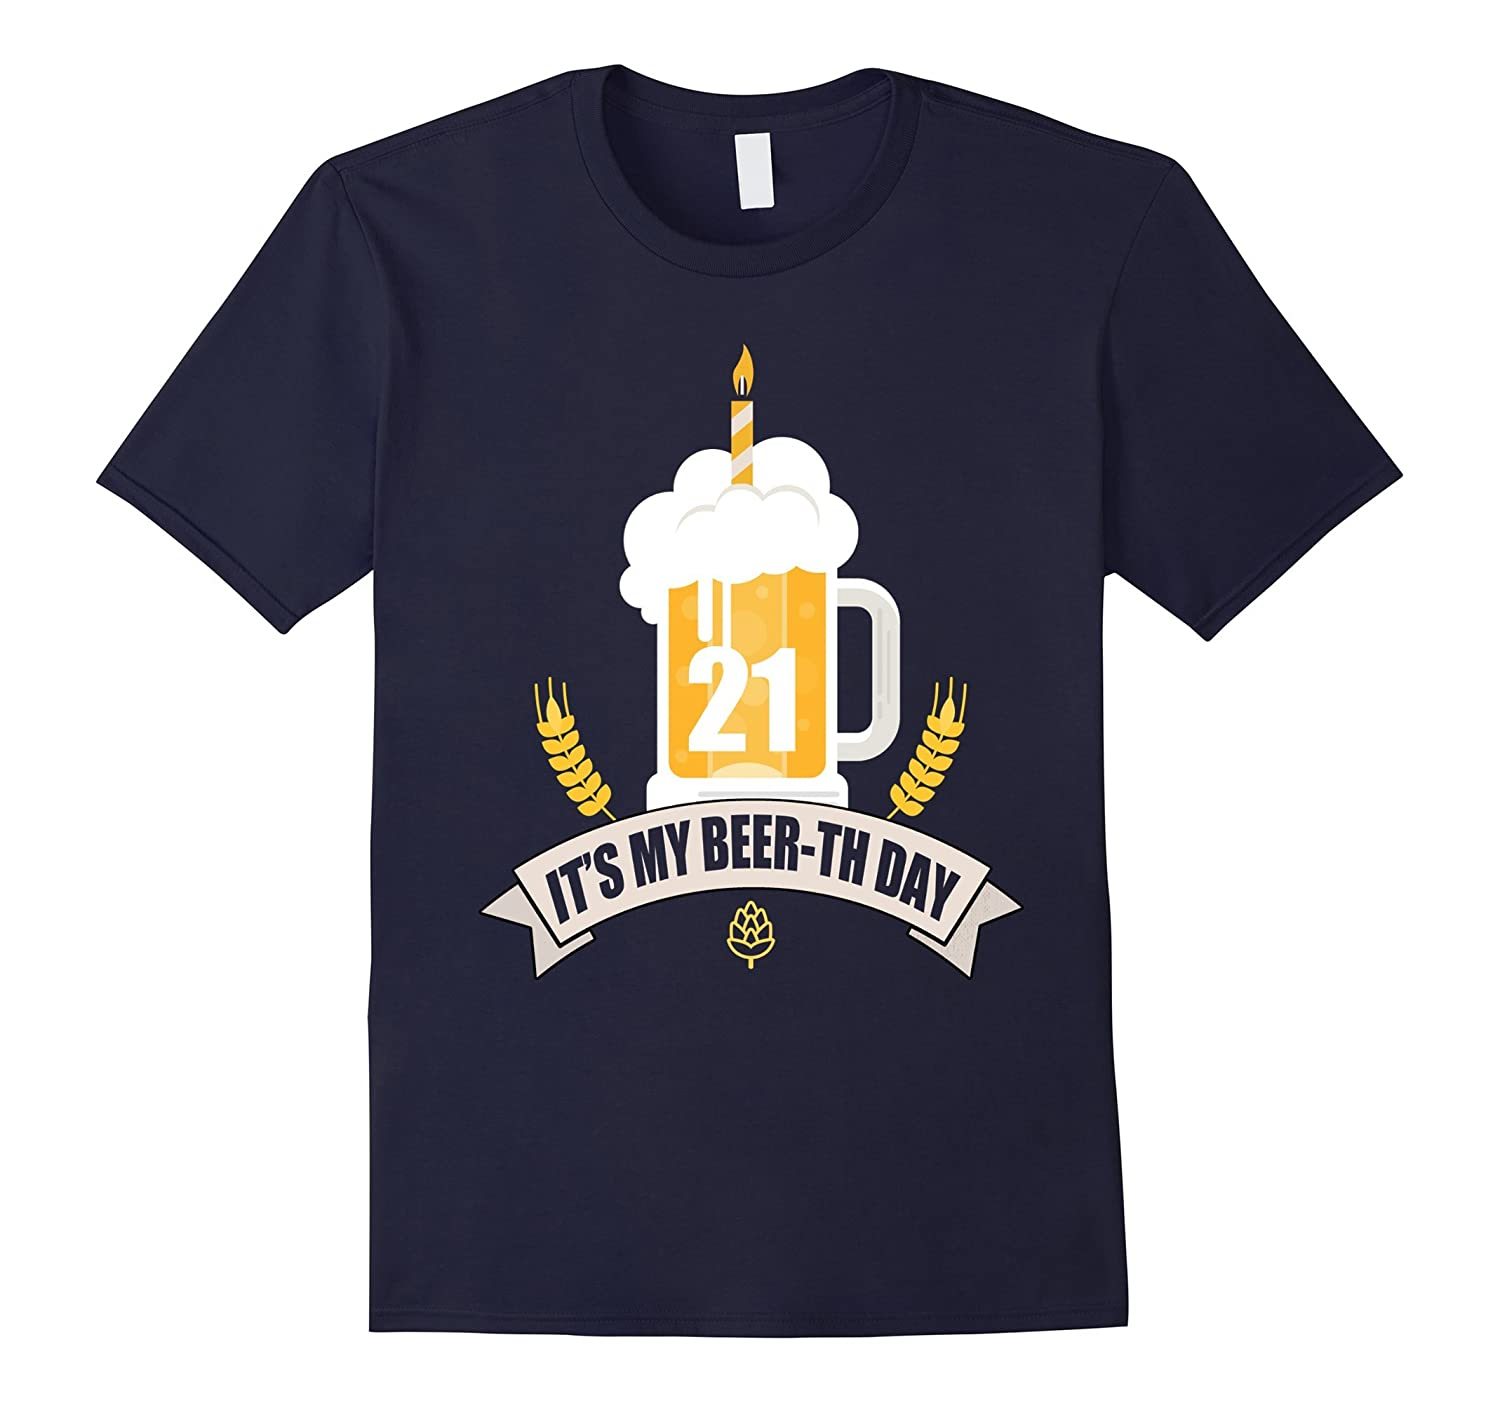 21st Birthday T-Shirt Its my Beer-th Day Funny Beer Shirt-CD